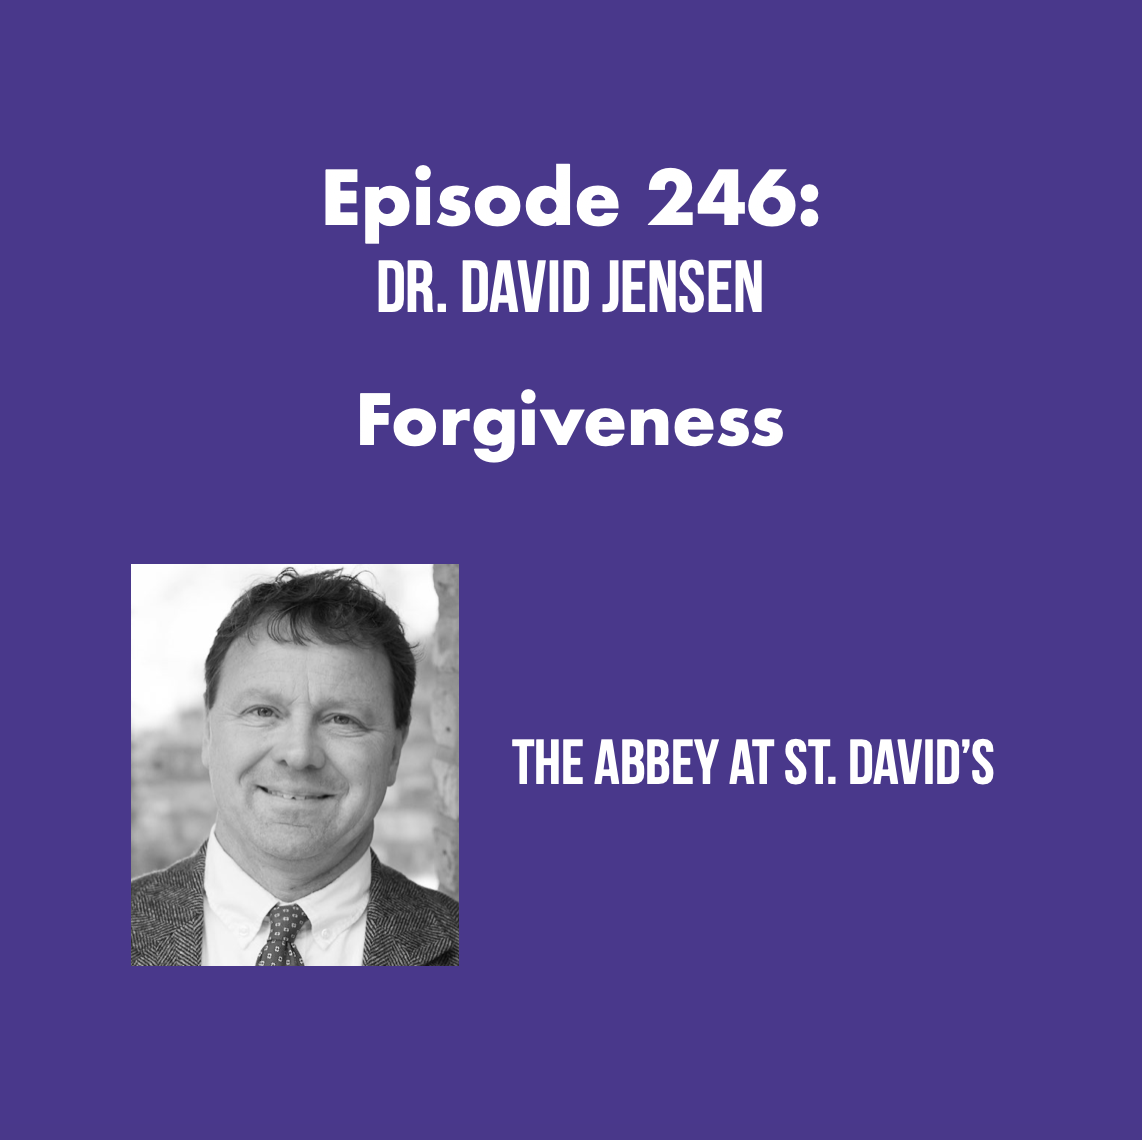 Episode 246: Forgiveness with Dr. David Jensen